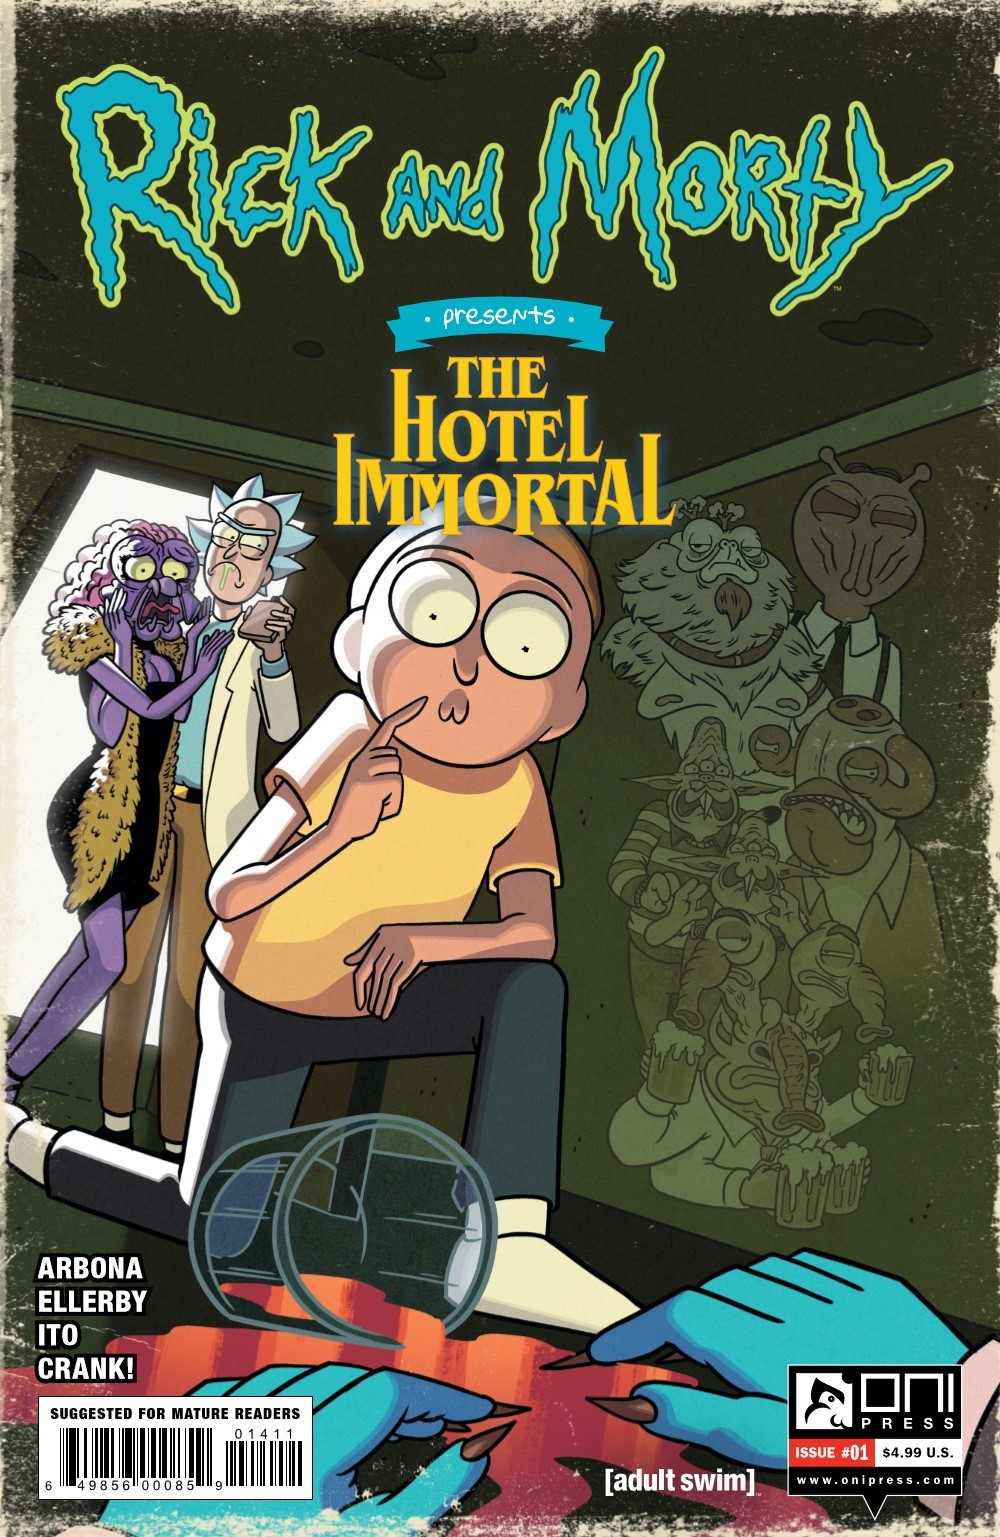 RM-PRES-THE-HOTEL-IMMORTAL-1-REFERENCE-01 ComicList: Oni Press New Releases for 07/21/2021